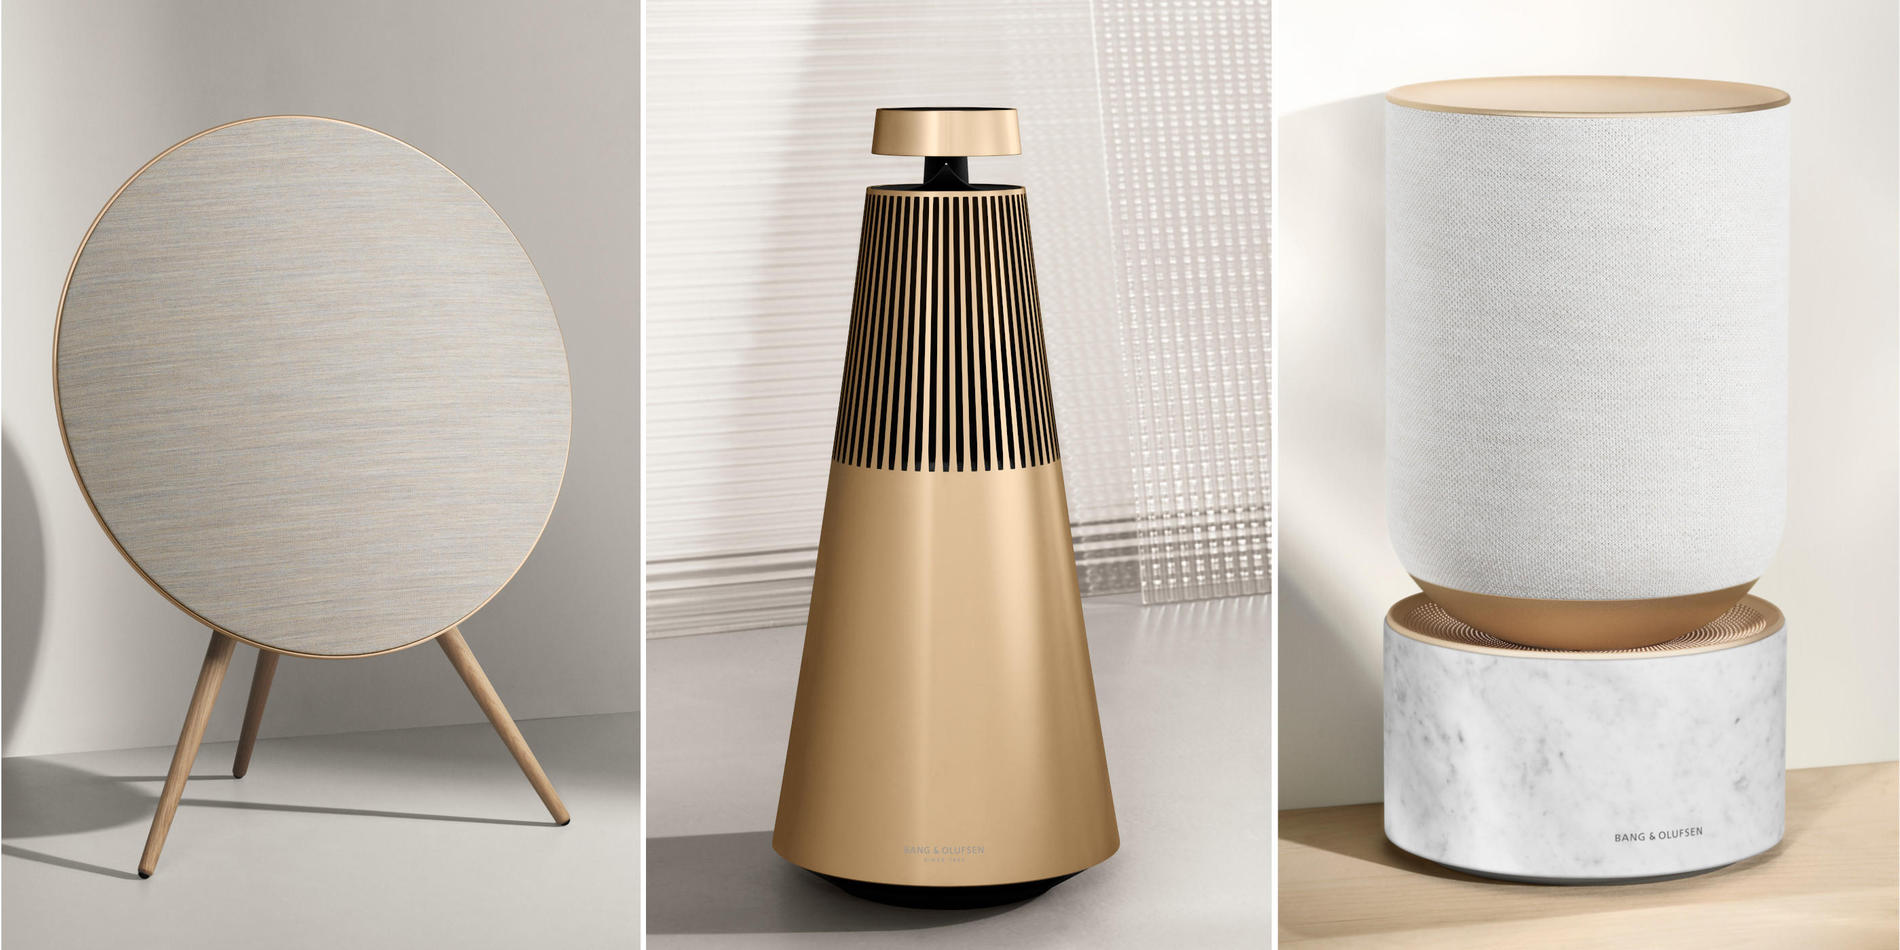 Altavoces y auriculares dorados - Golden Collection de Bang & Olufsen